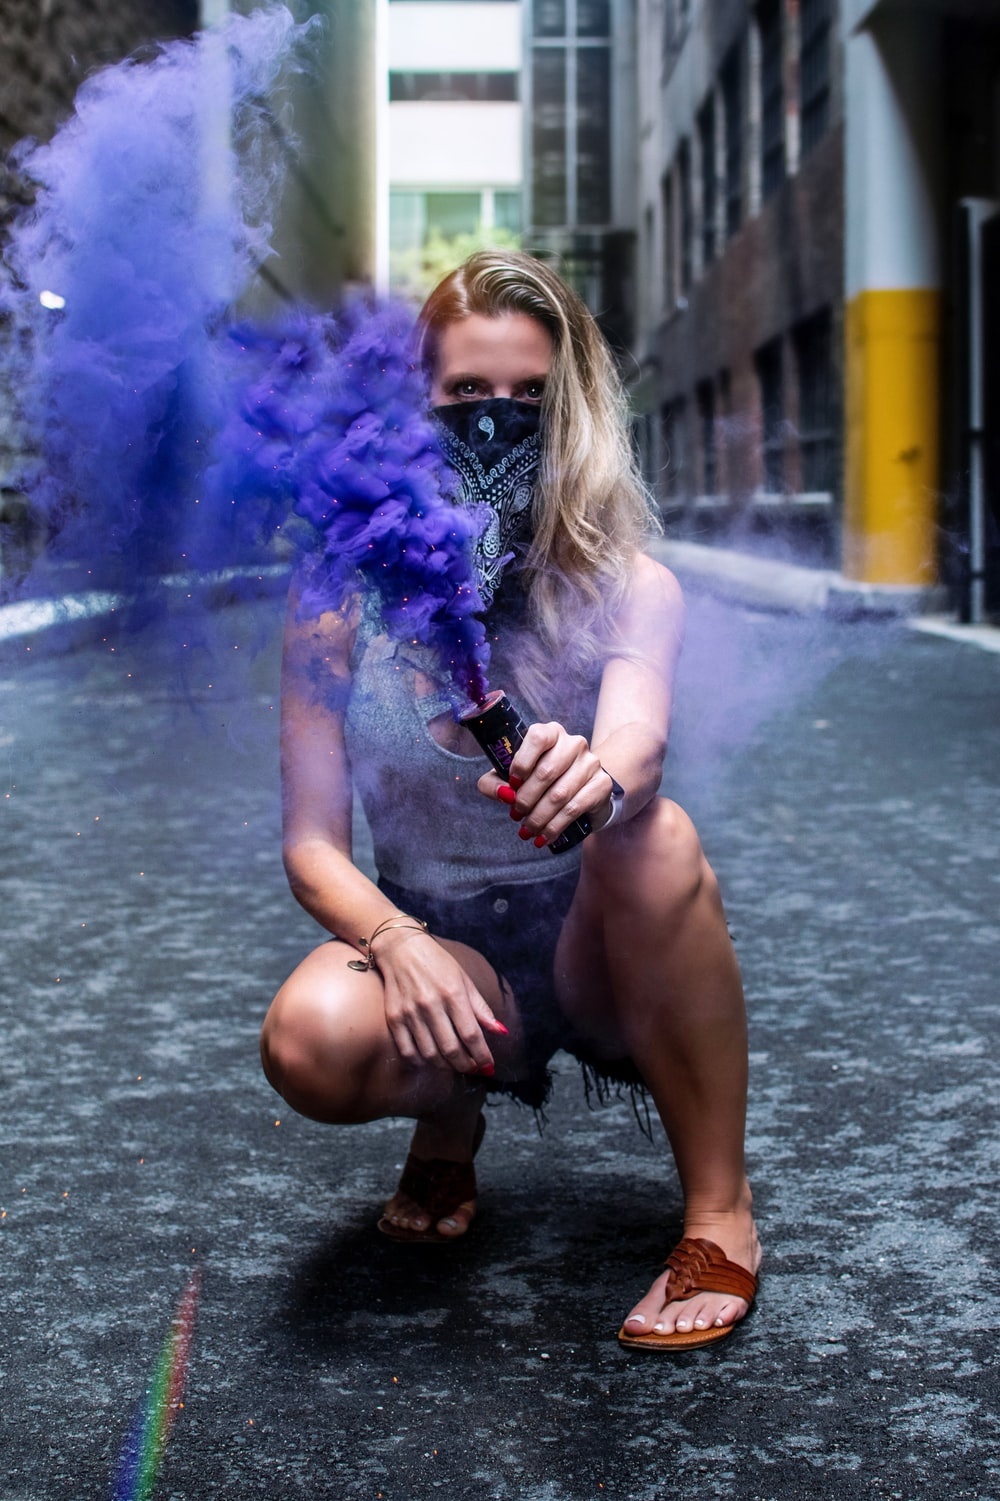 woman bending on concrete pavement holding blue smoke